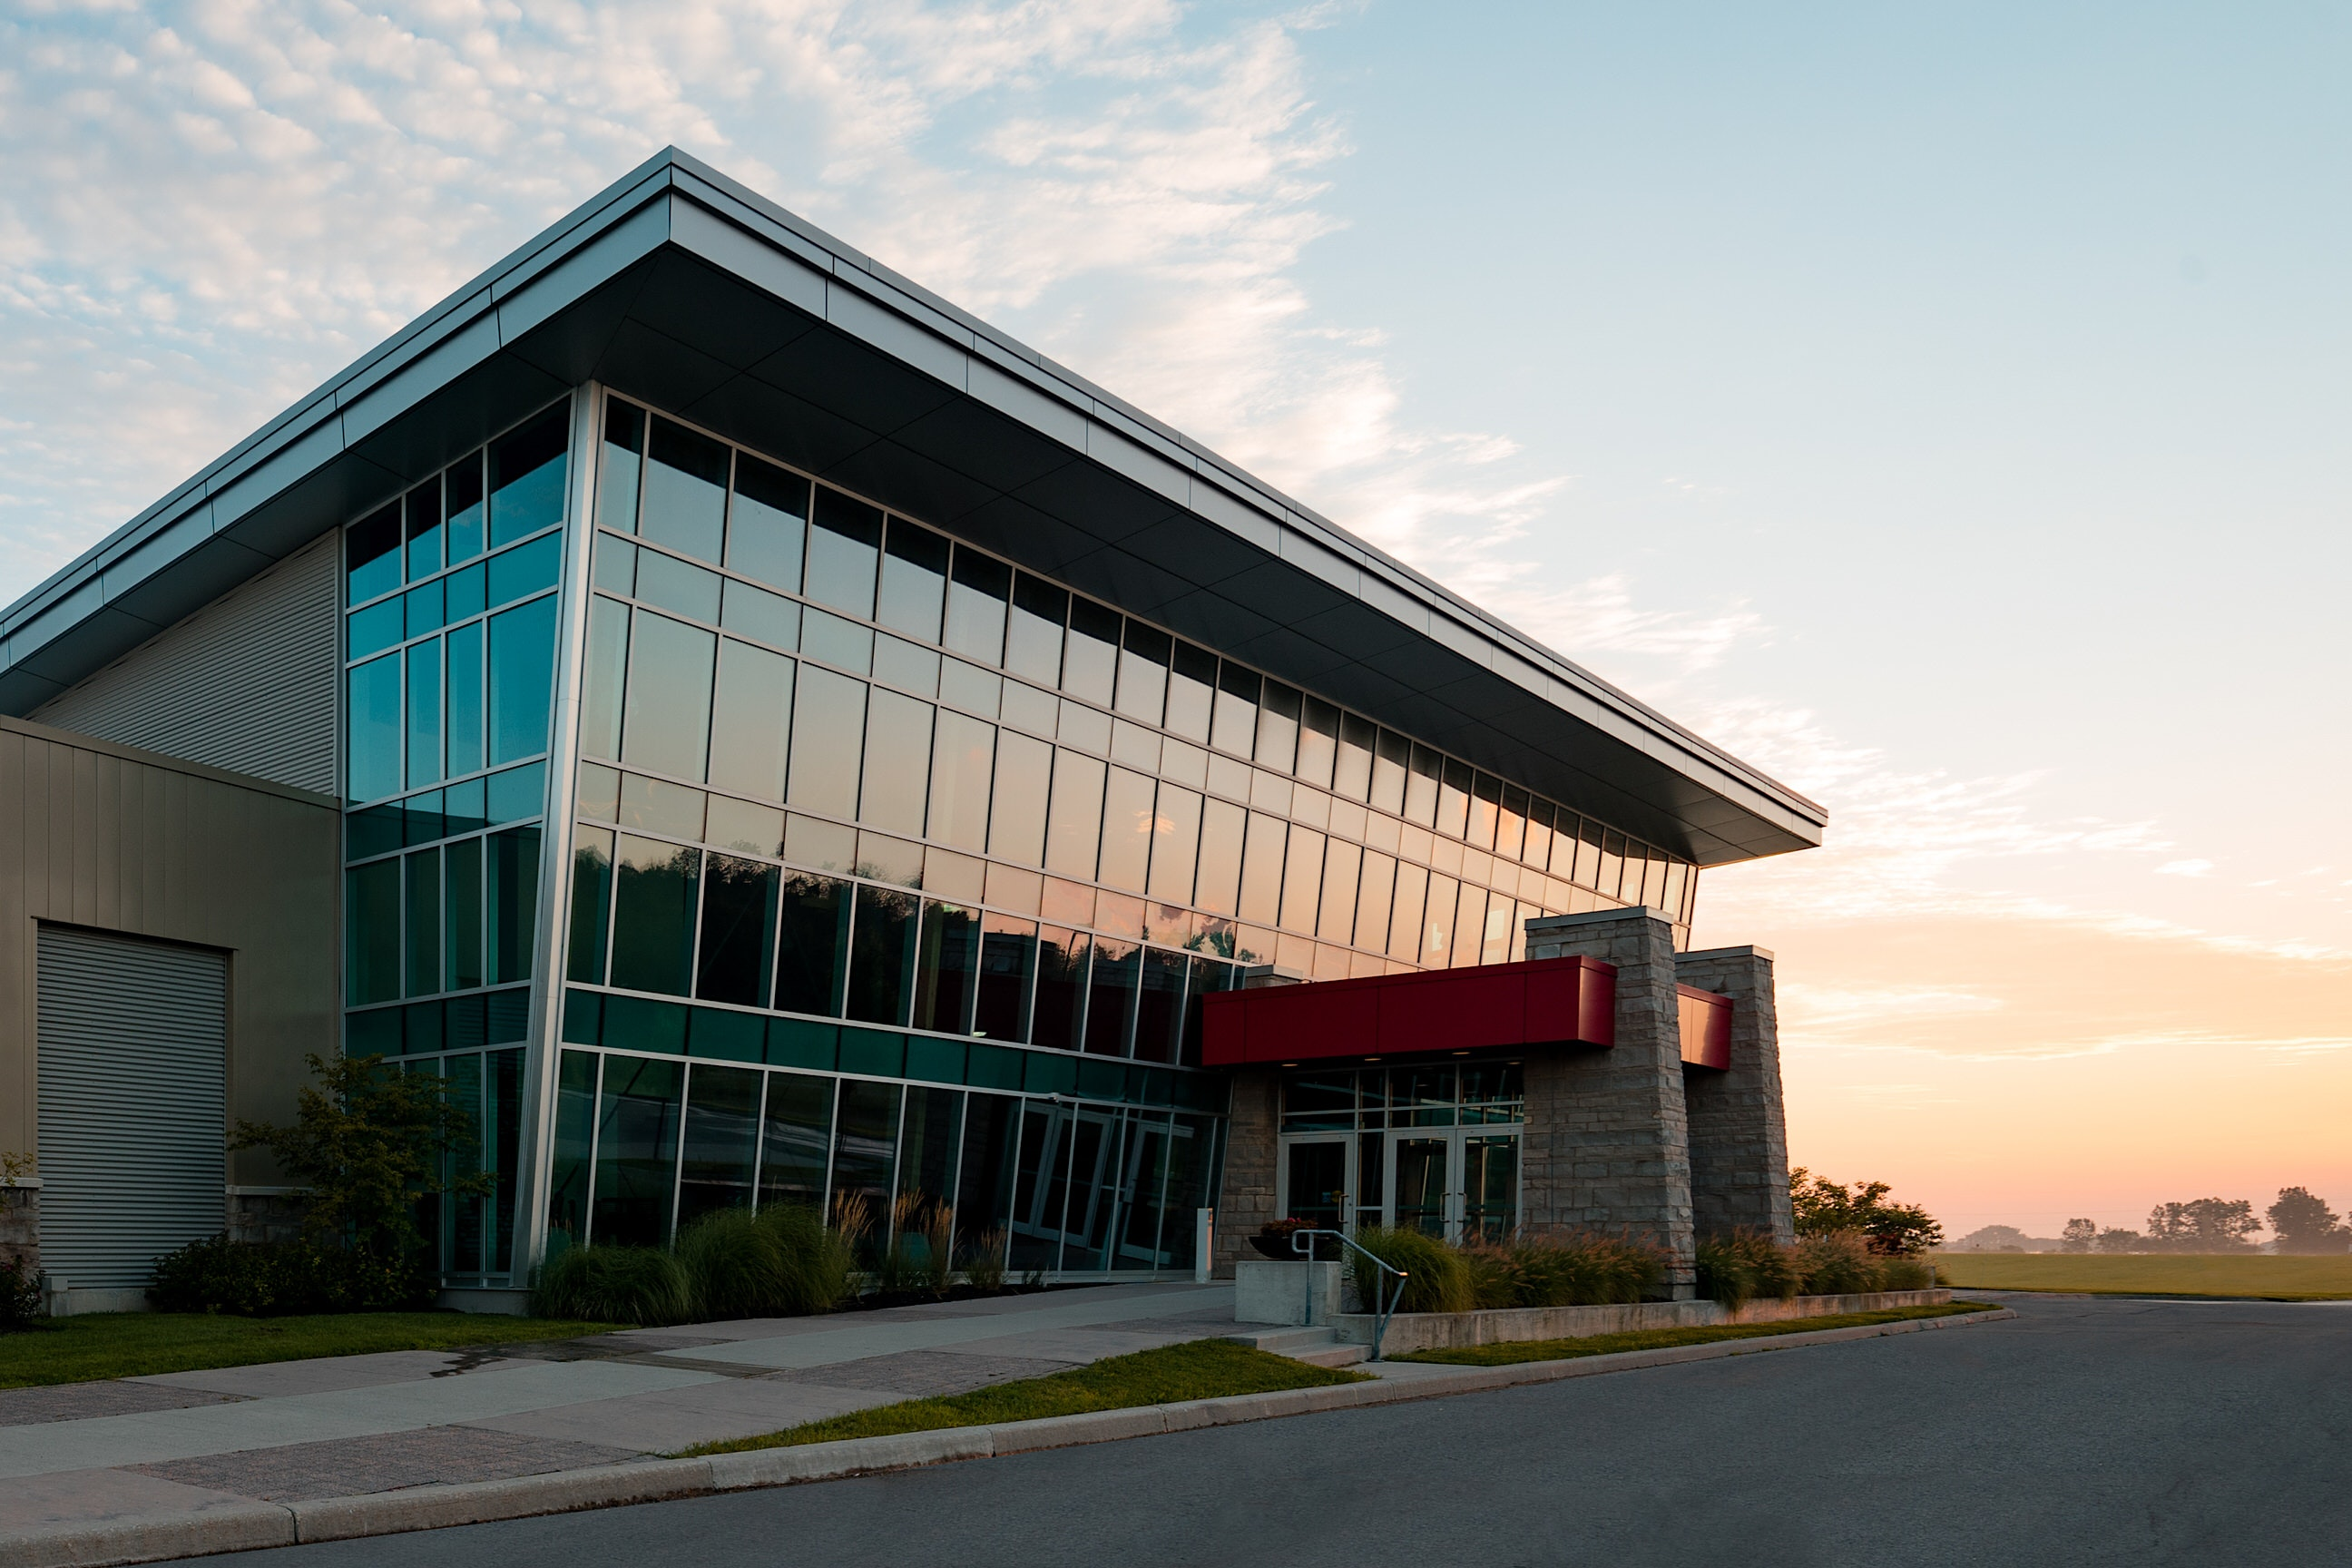 Architectural Photo of Forest City Community Church in London Ontario Canada